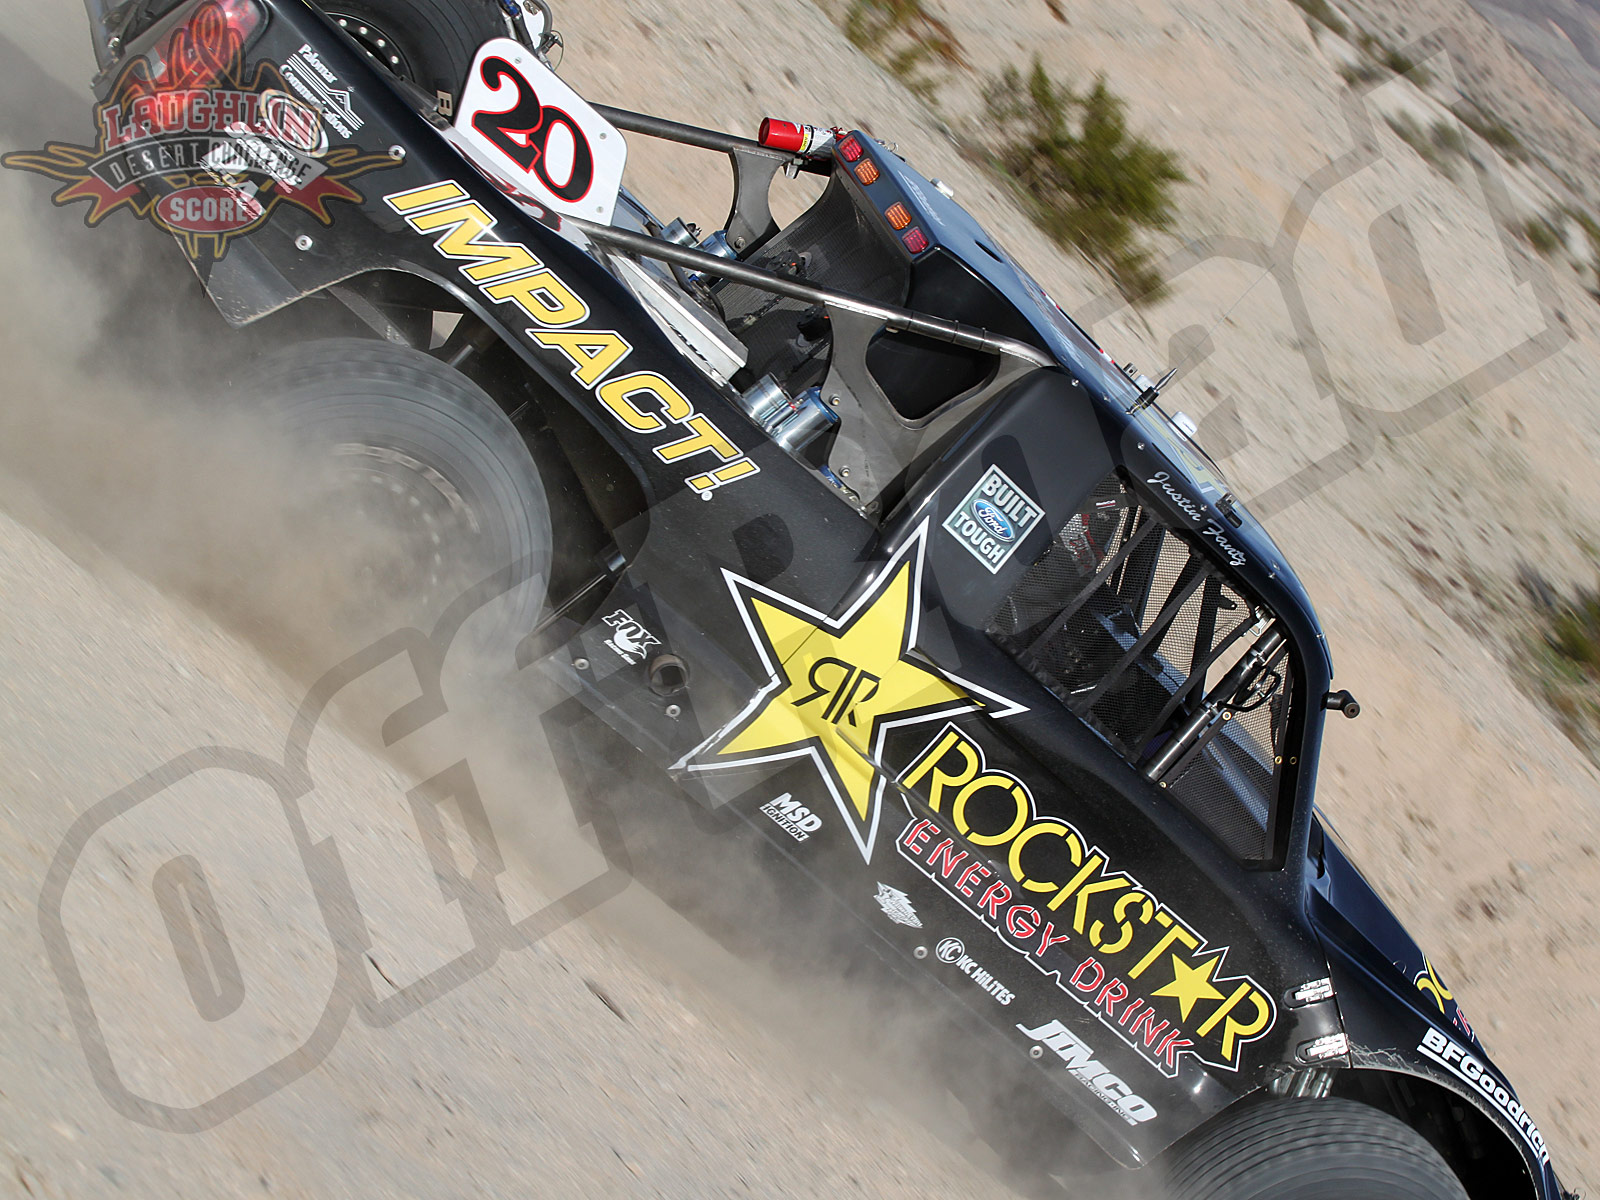 011911or 5088+2011 score laughlin desert challenge+trophy truck qualifying